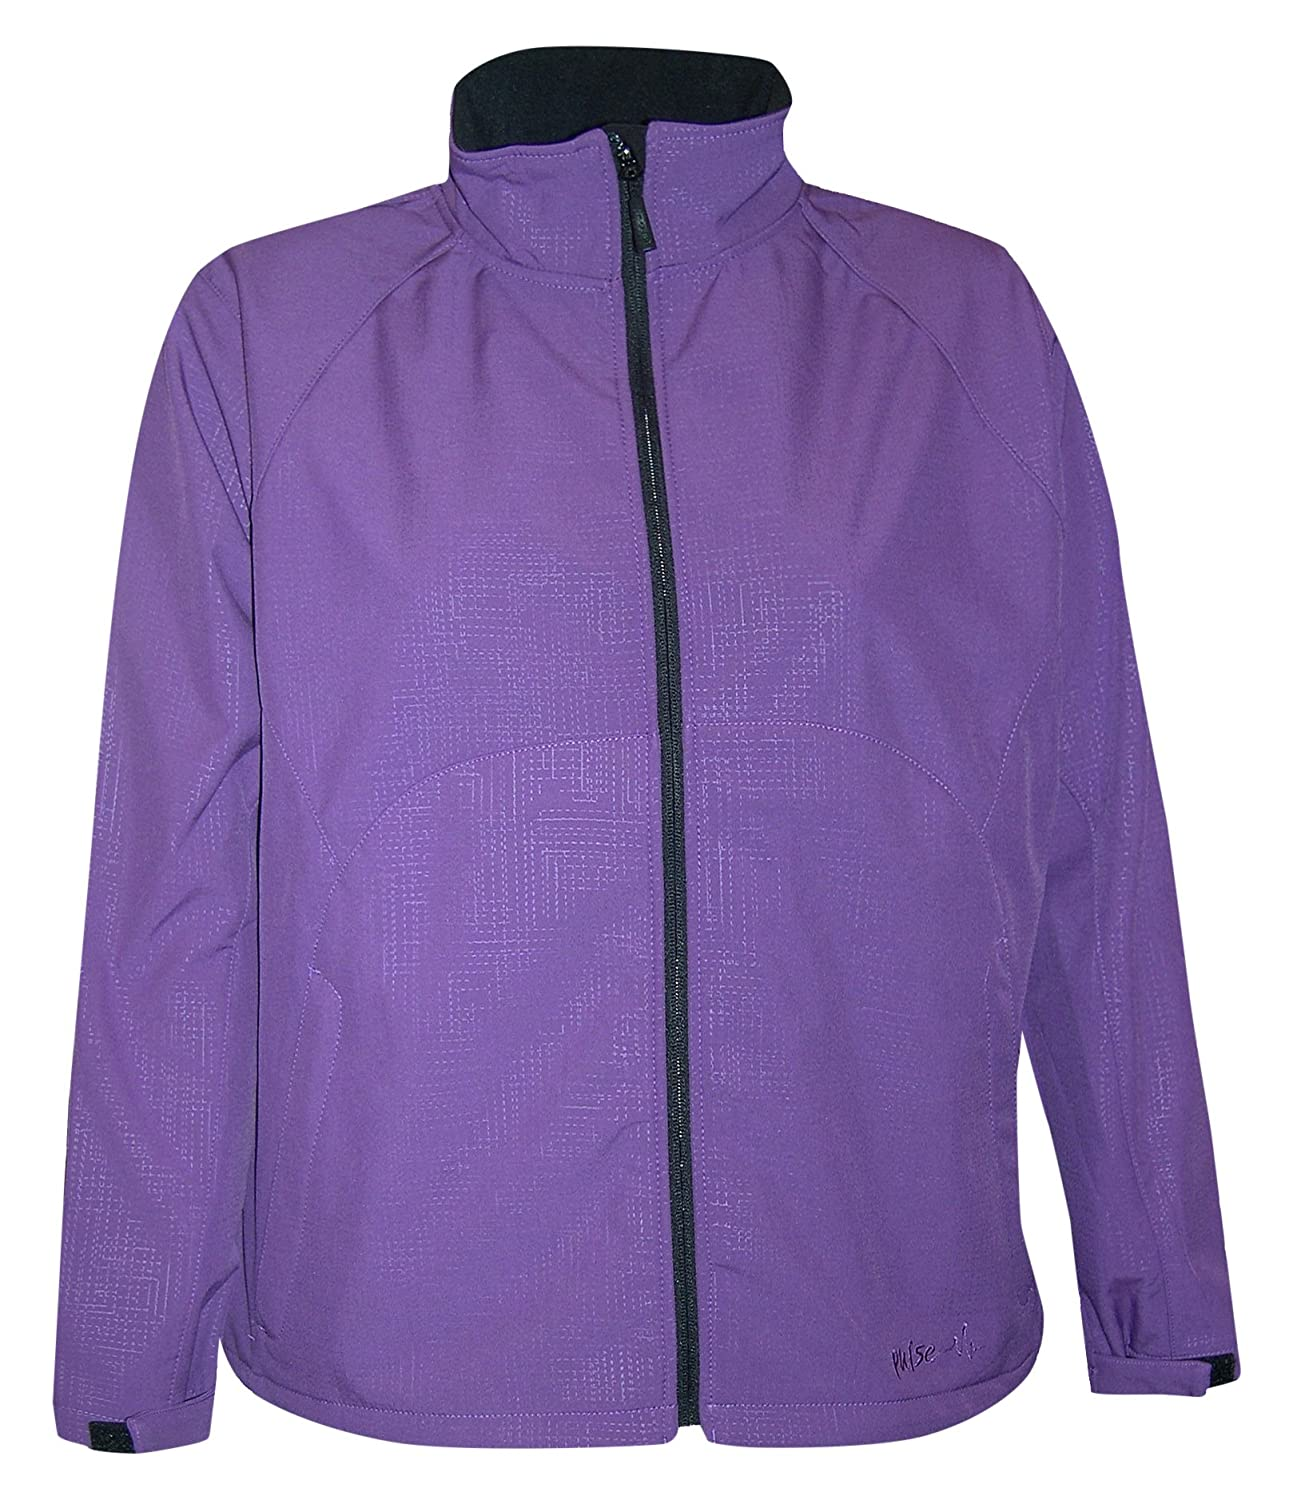 7b7f3701f5f Pulse Womens Plus Size Micro Fleece Soft Shell Jacket  bpz1B22682 ...